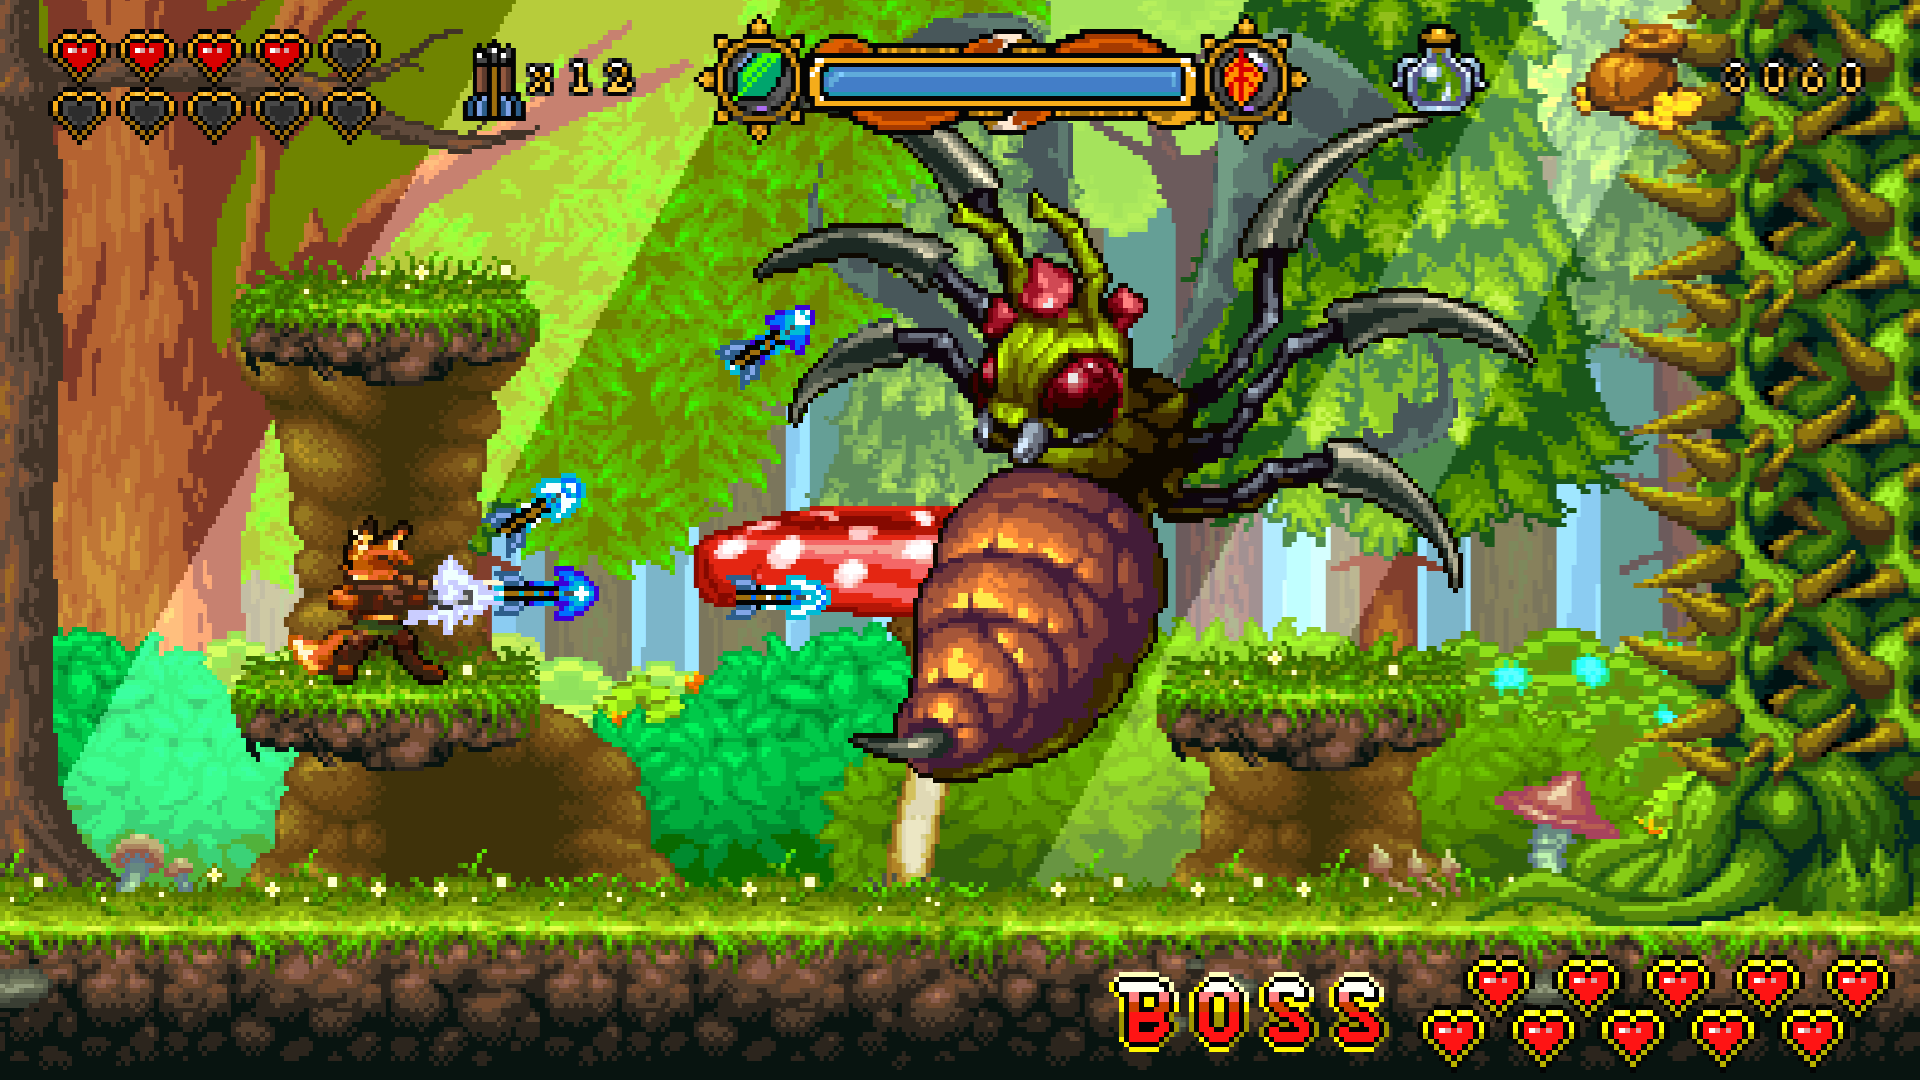 Fox n Forests boss